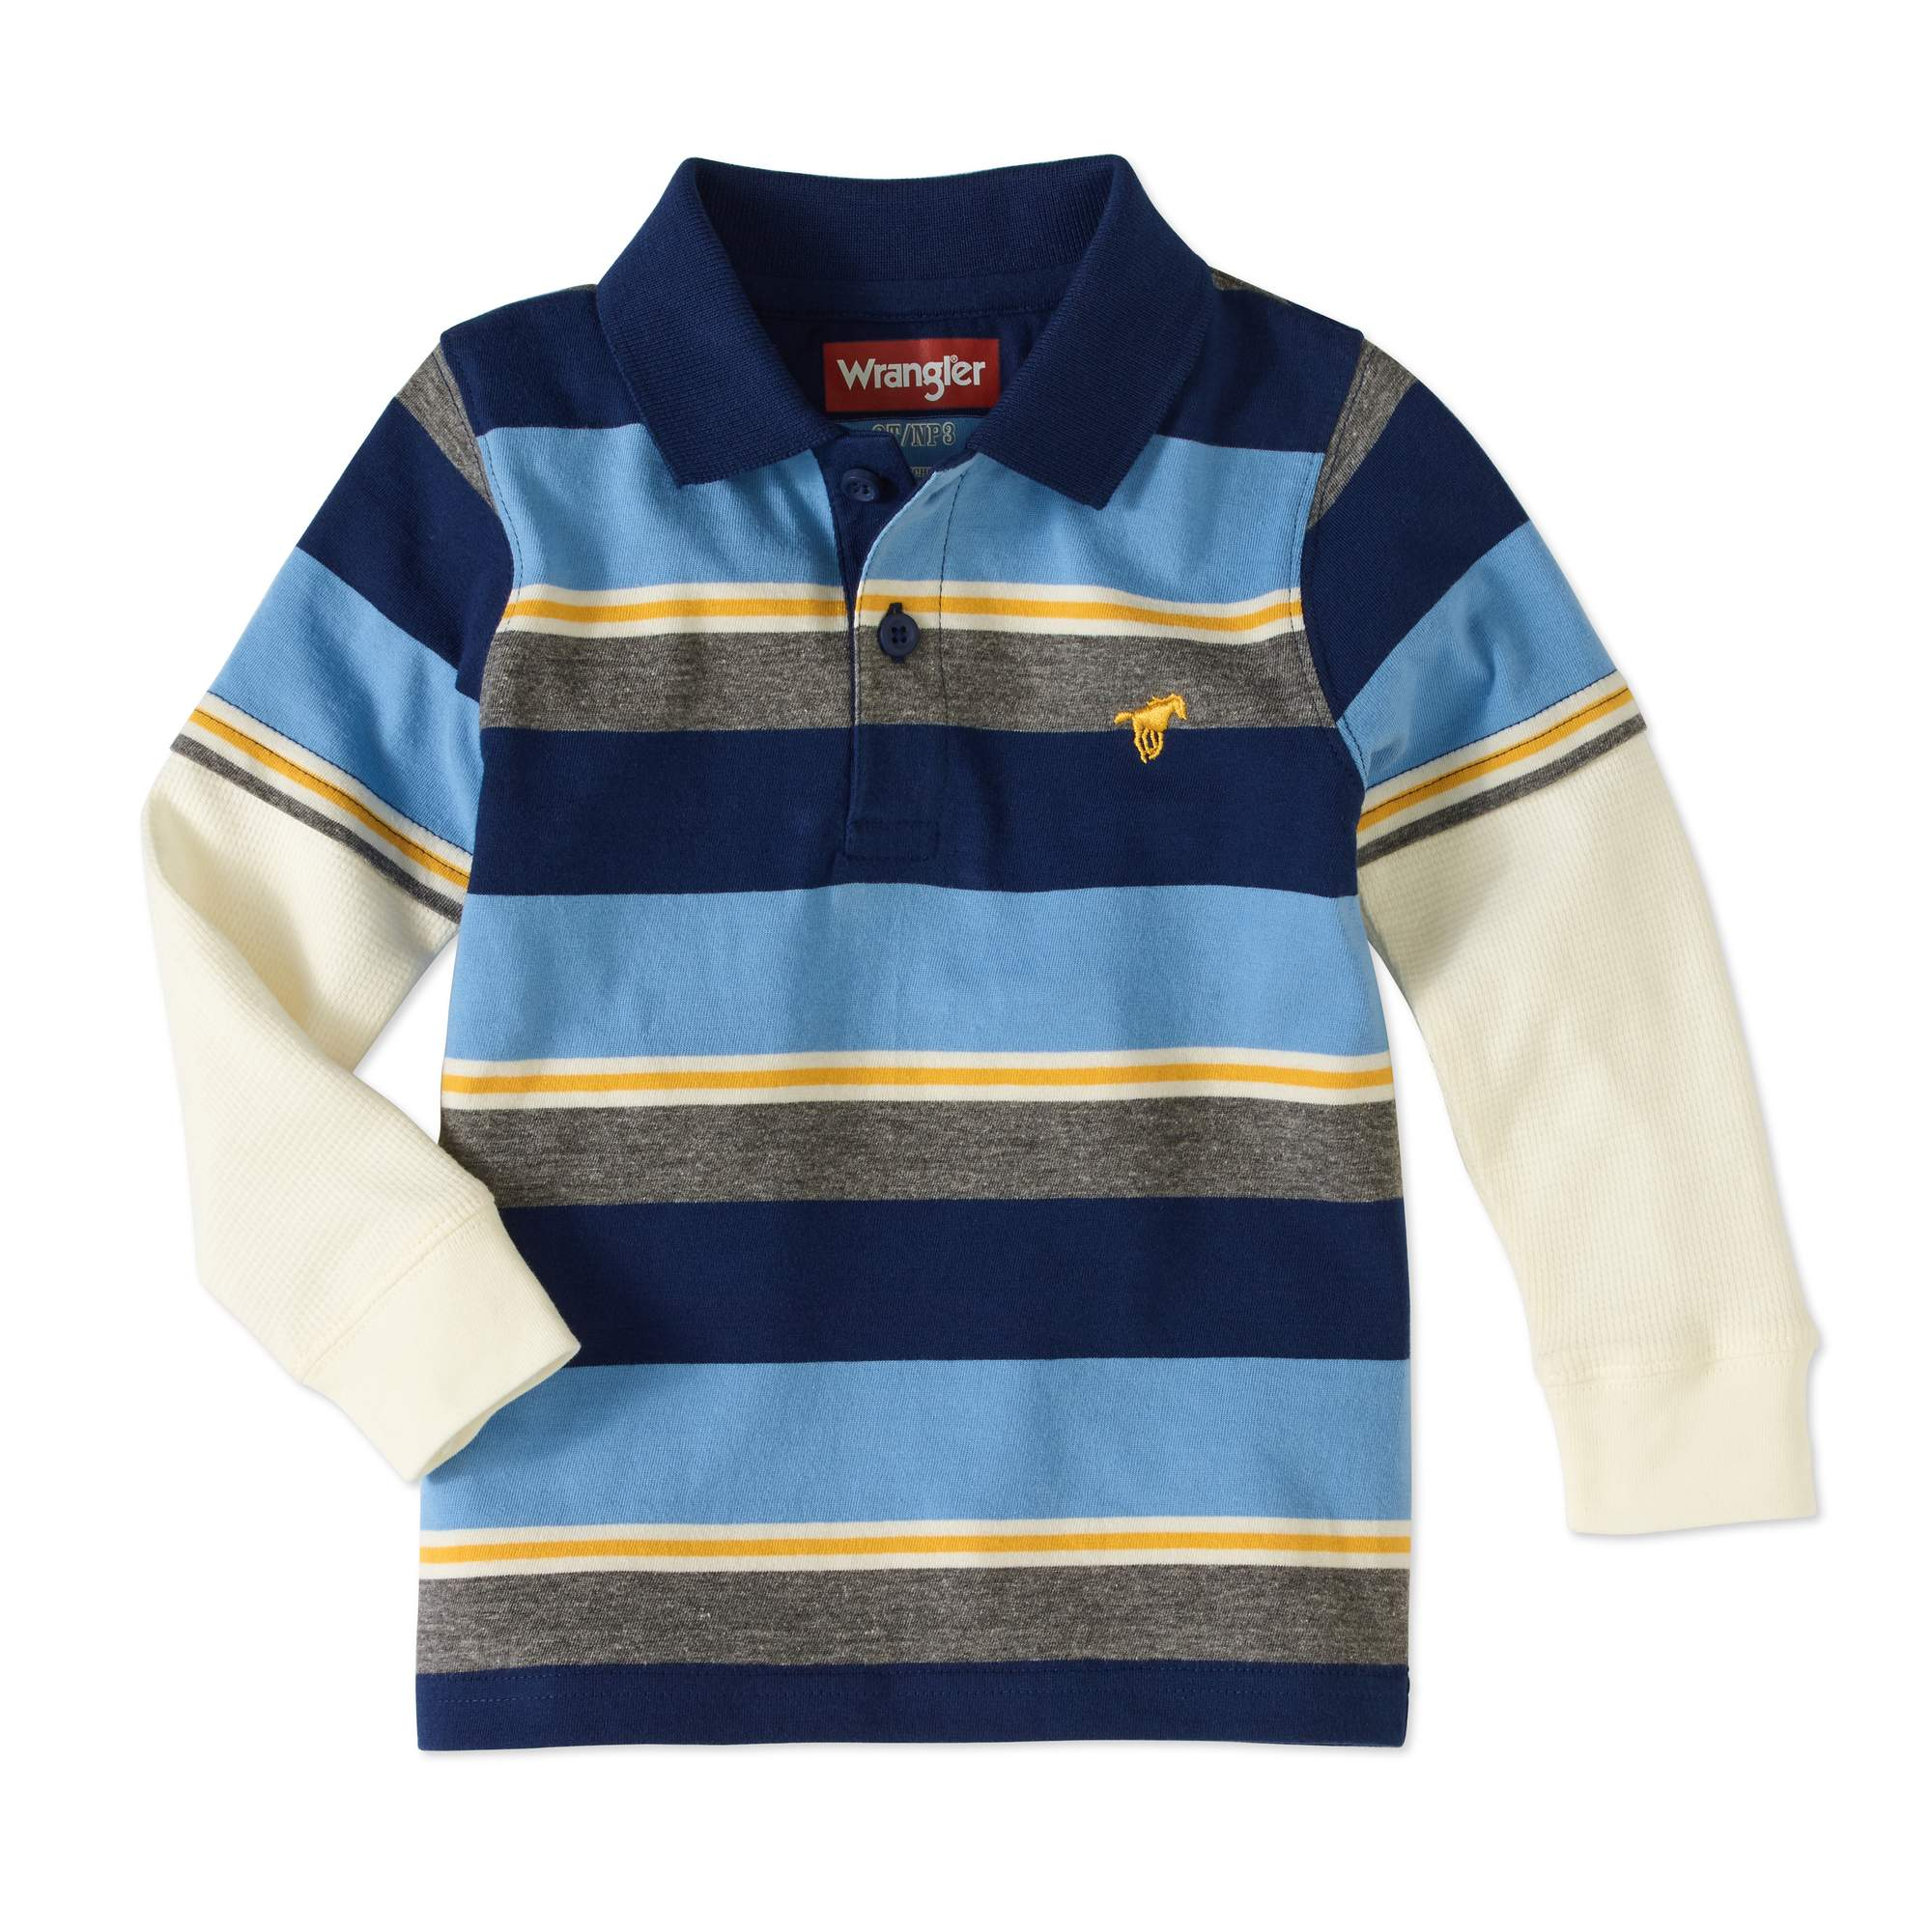 Wrangler Toddler Boy Hangdown Long Sleeve Polo Shirt